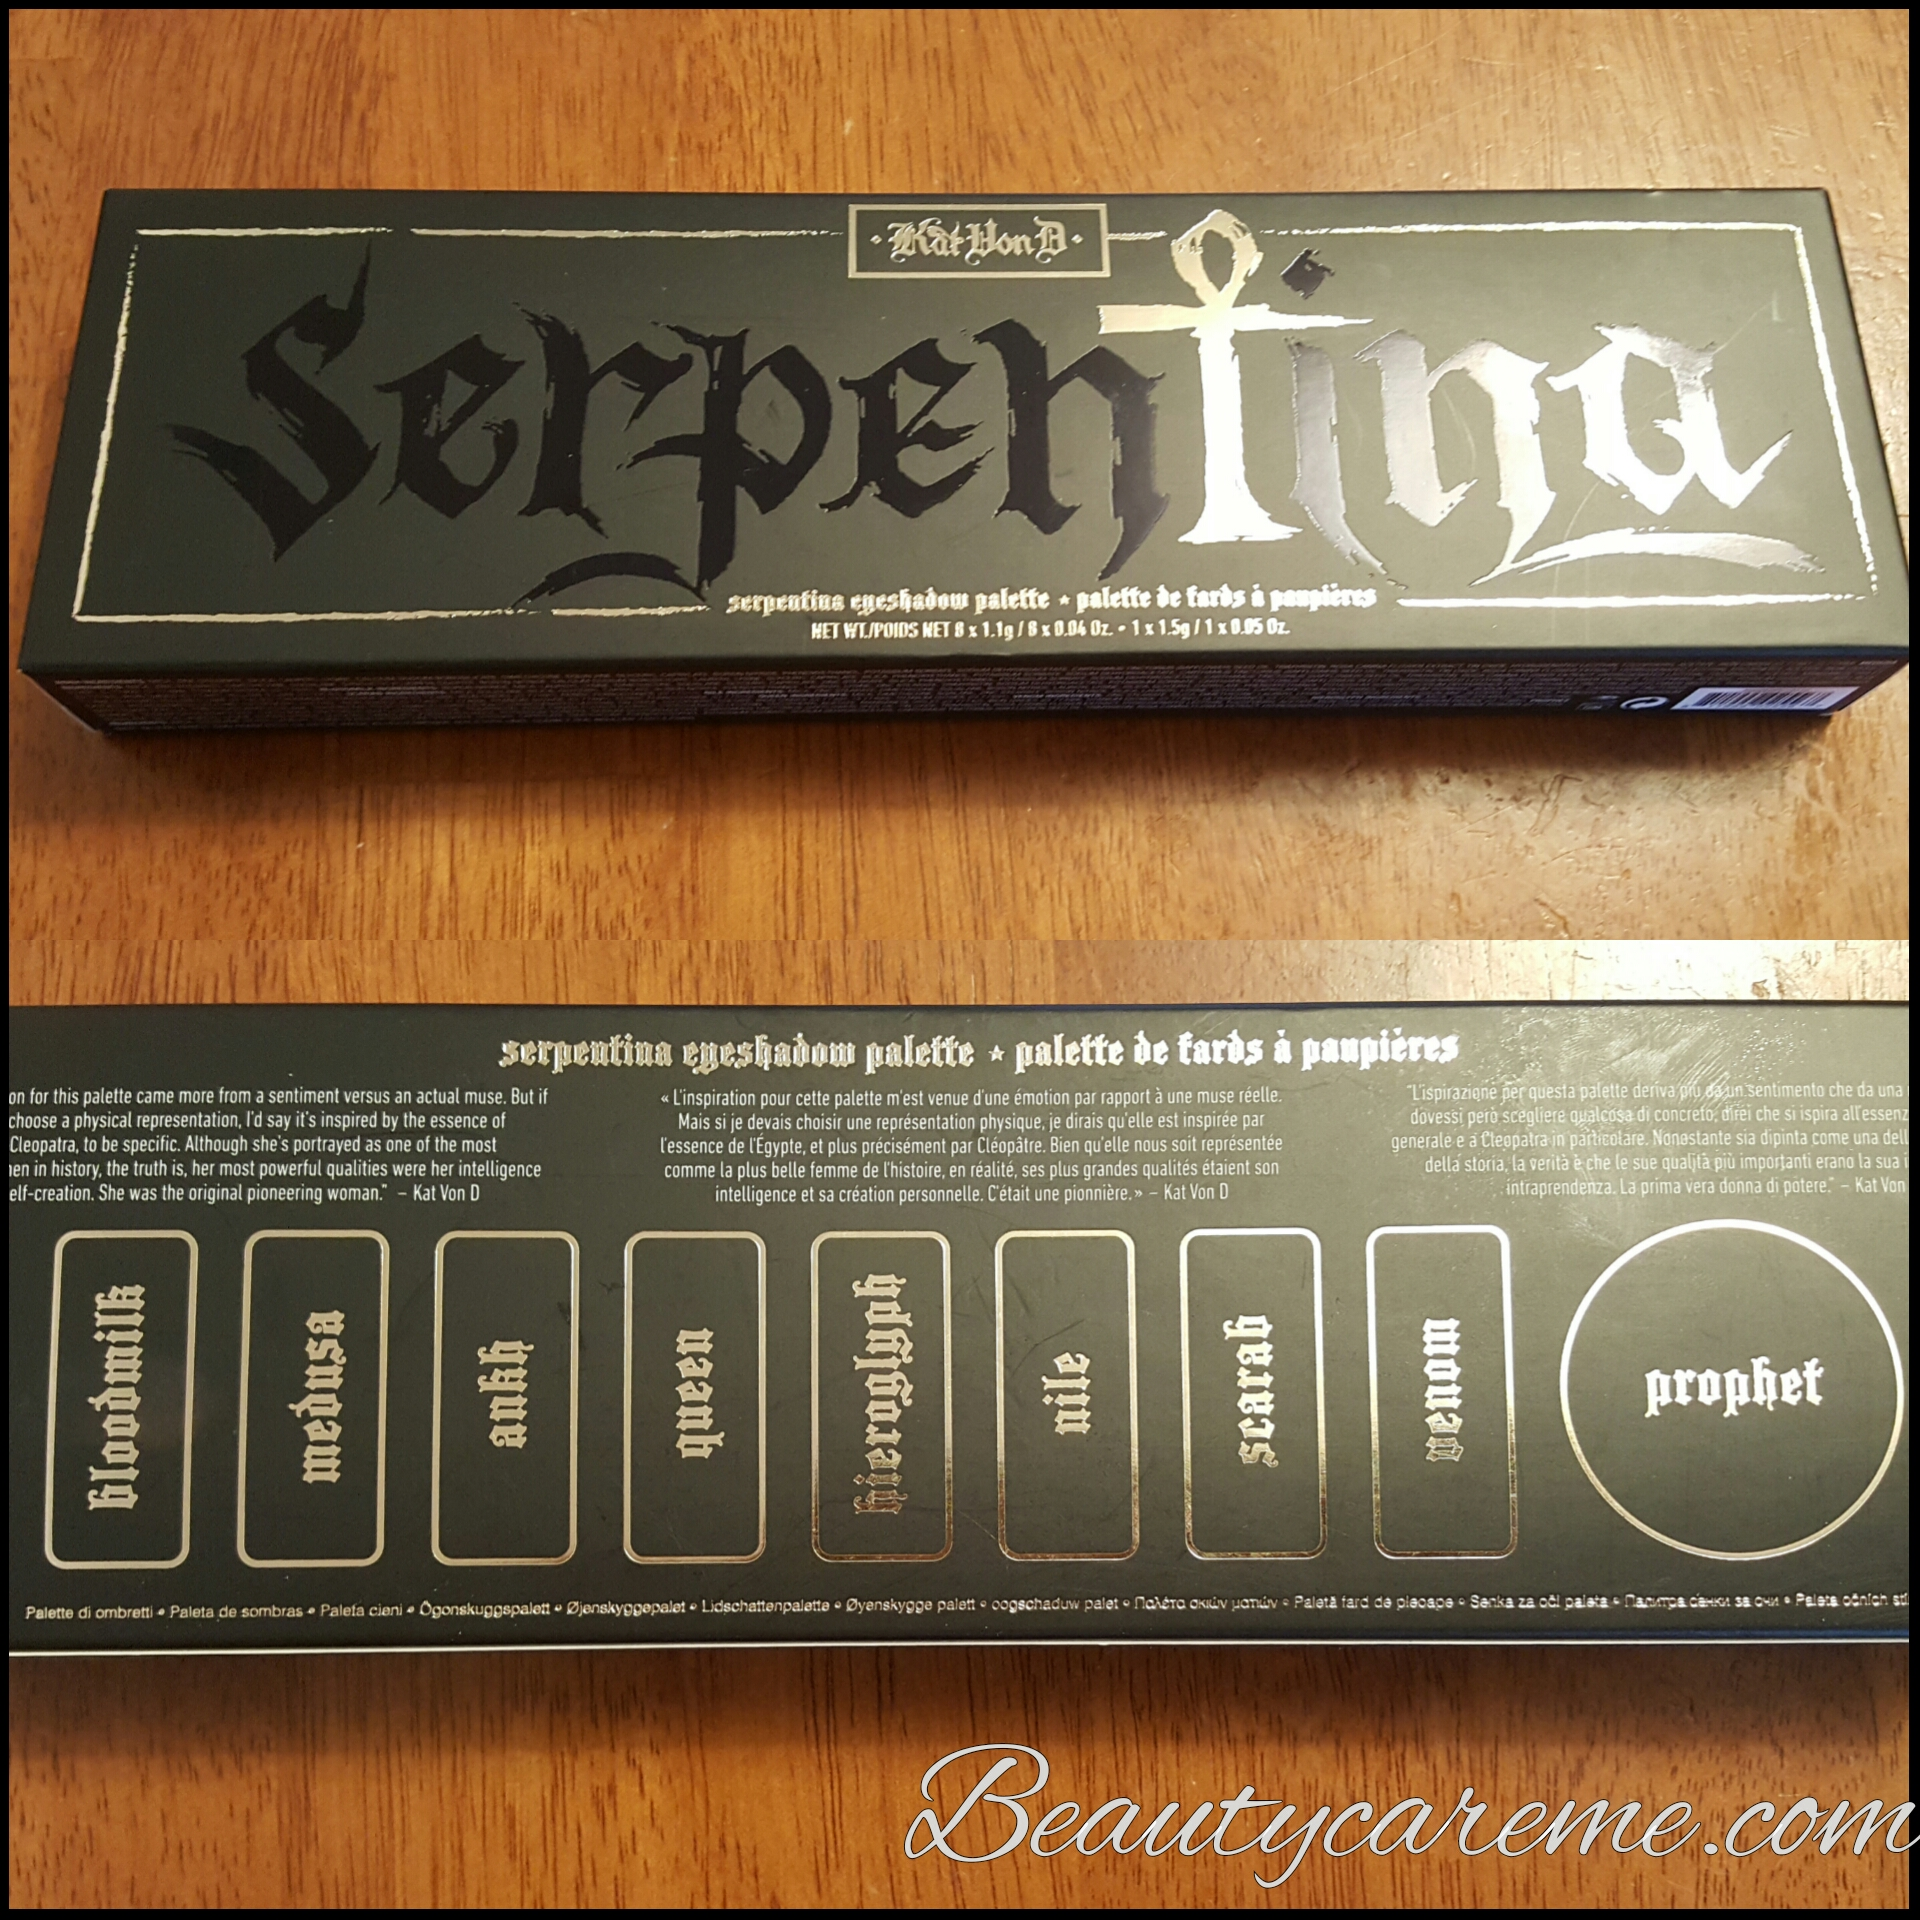 Kat Von D Serpentina eyeshadow palette review and looks